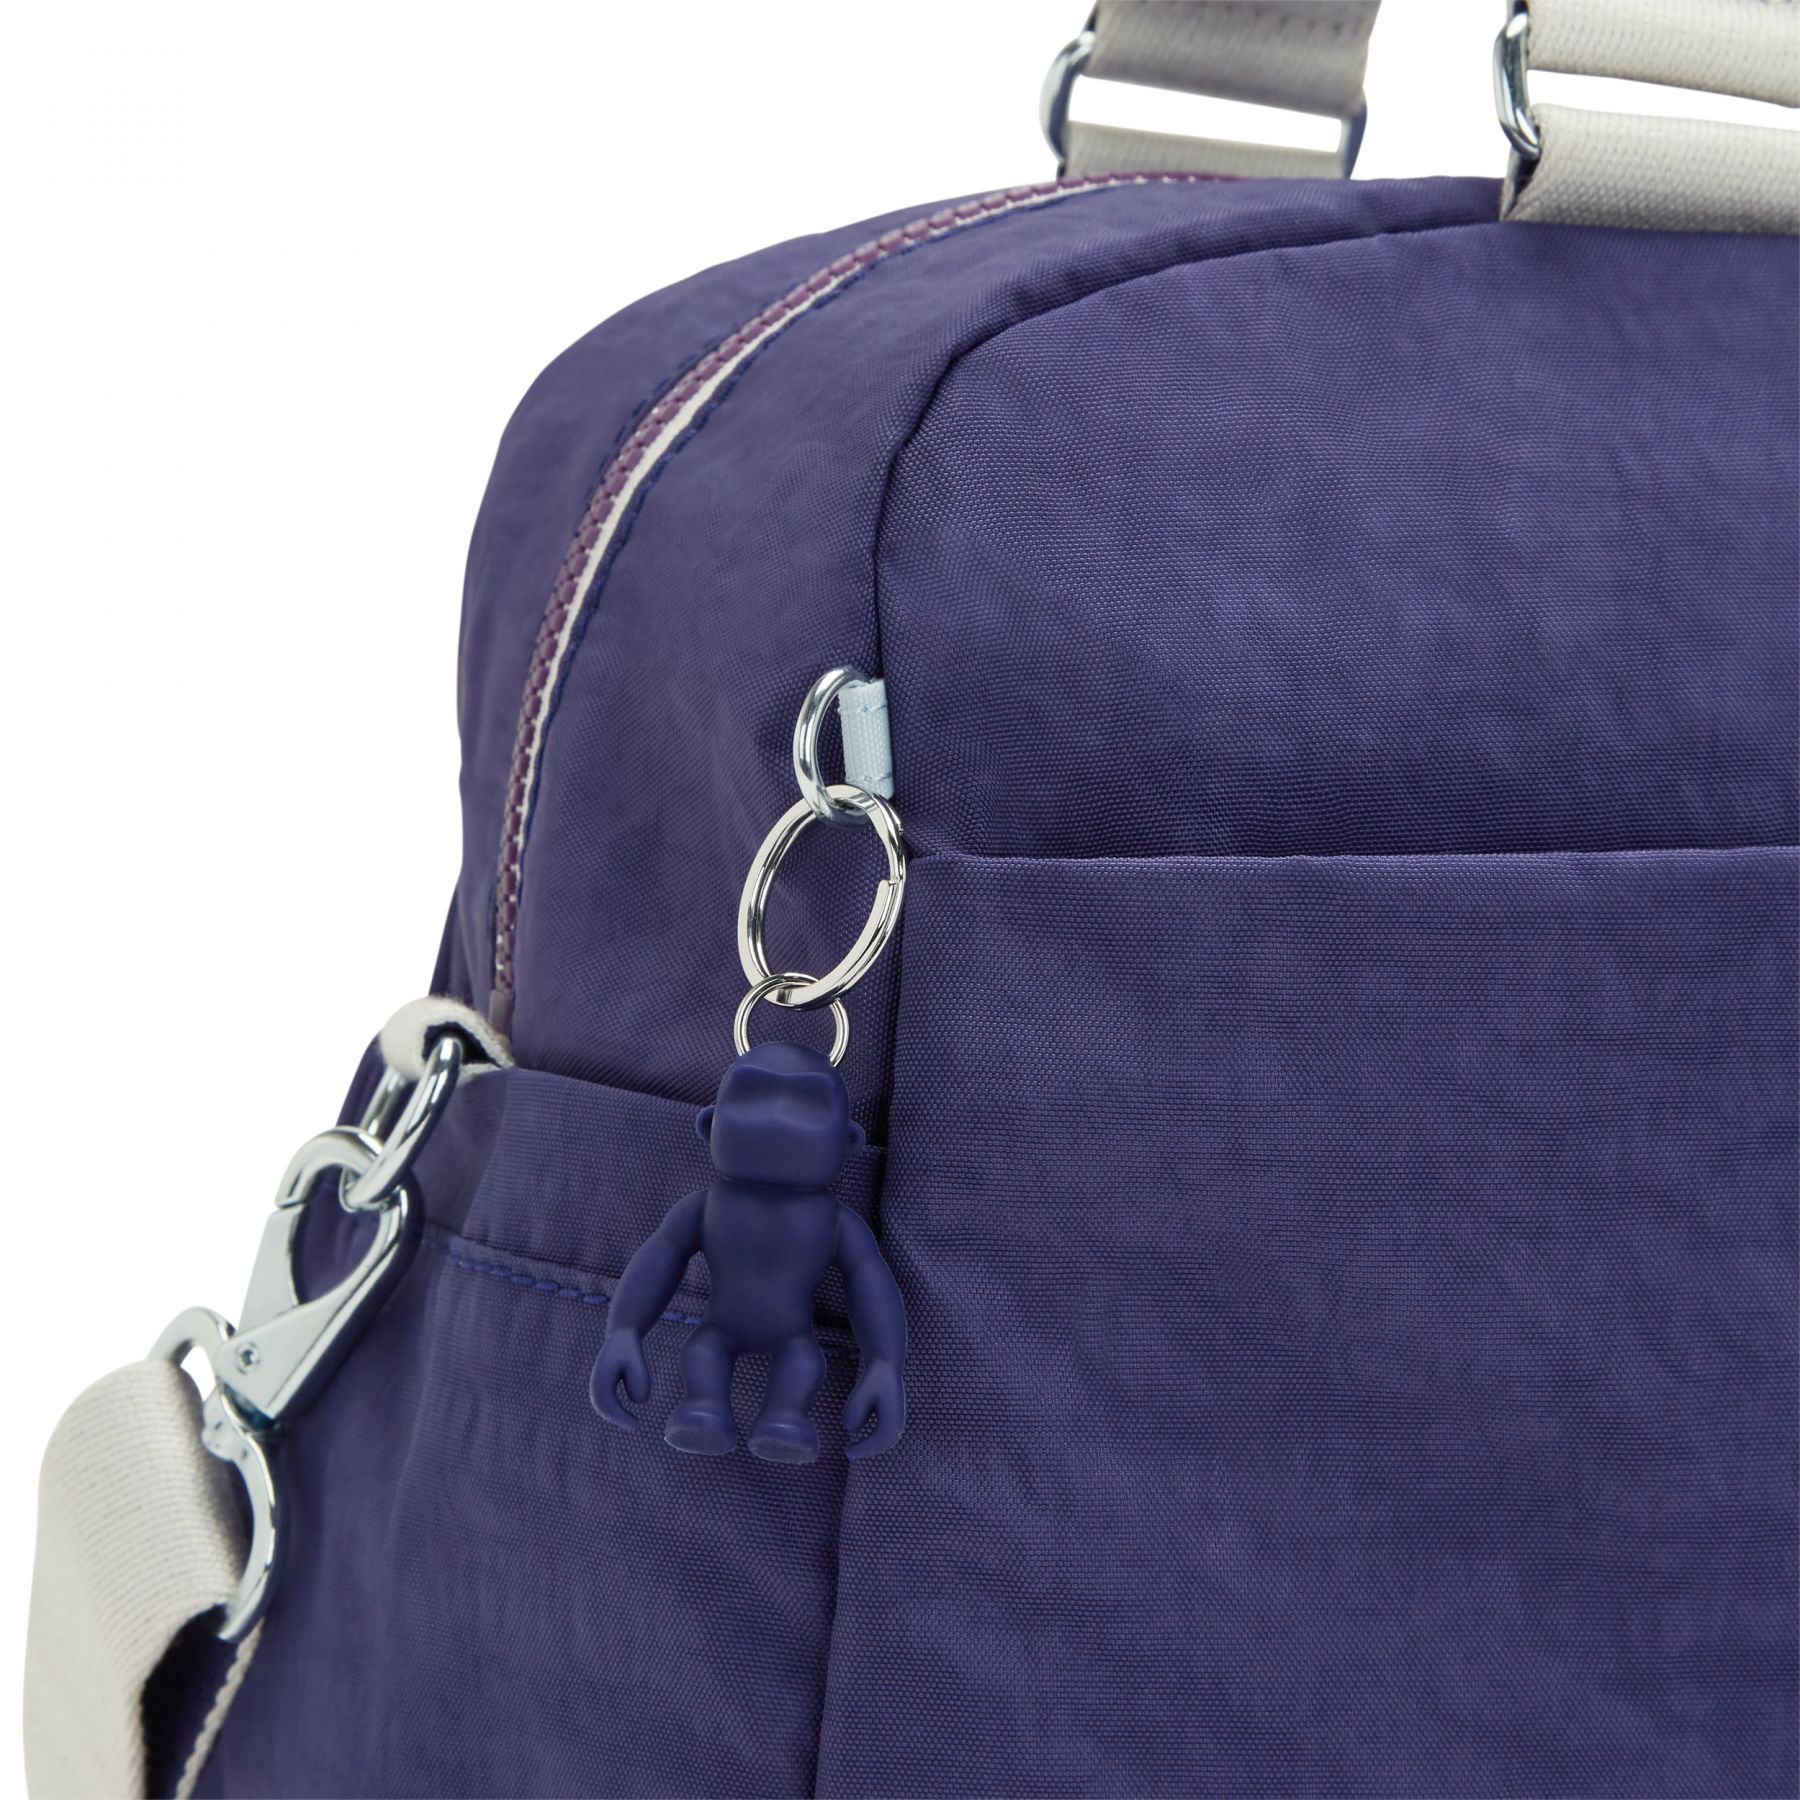 DENY LUGGAGE by Kipling - view 5